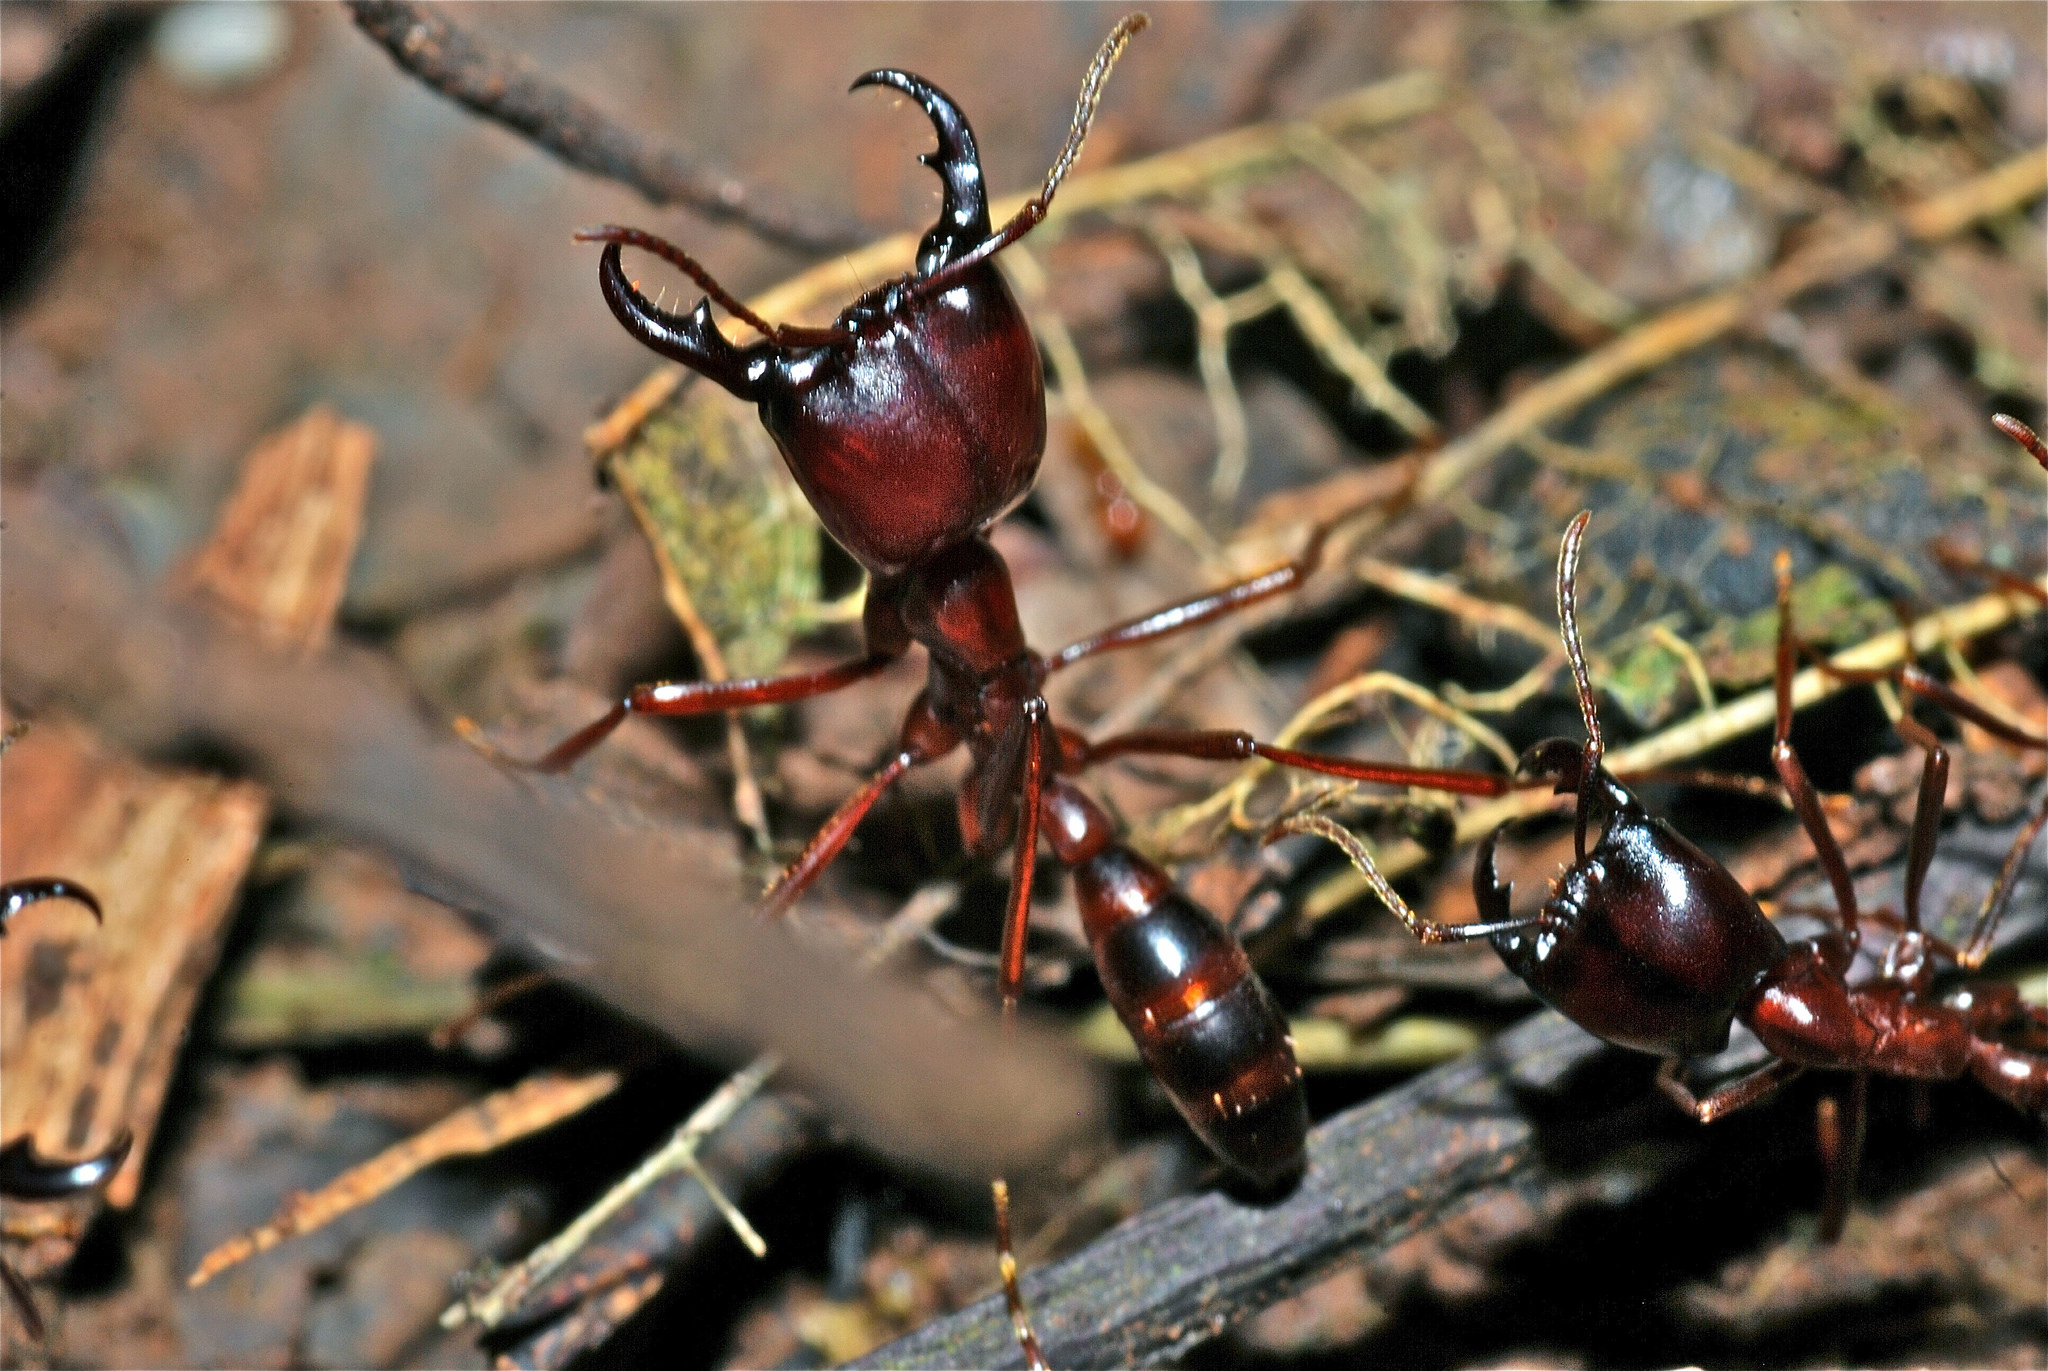 These army ants in Uganda are a critical part of the forest ecosystem. Image by  Bernard DUPONT